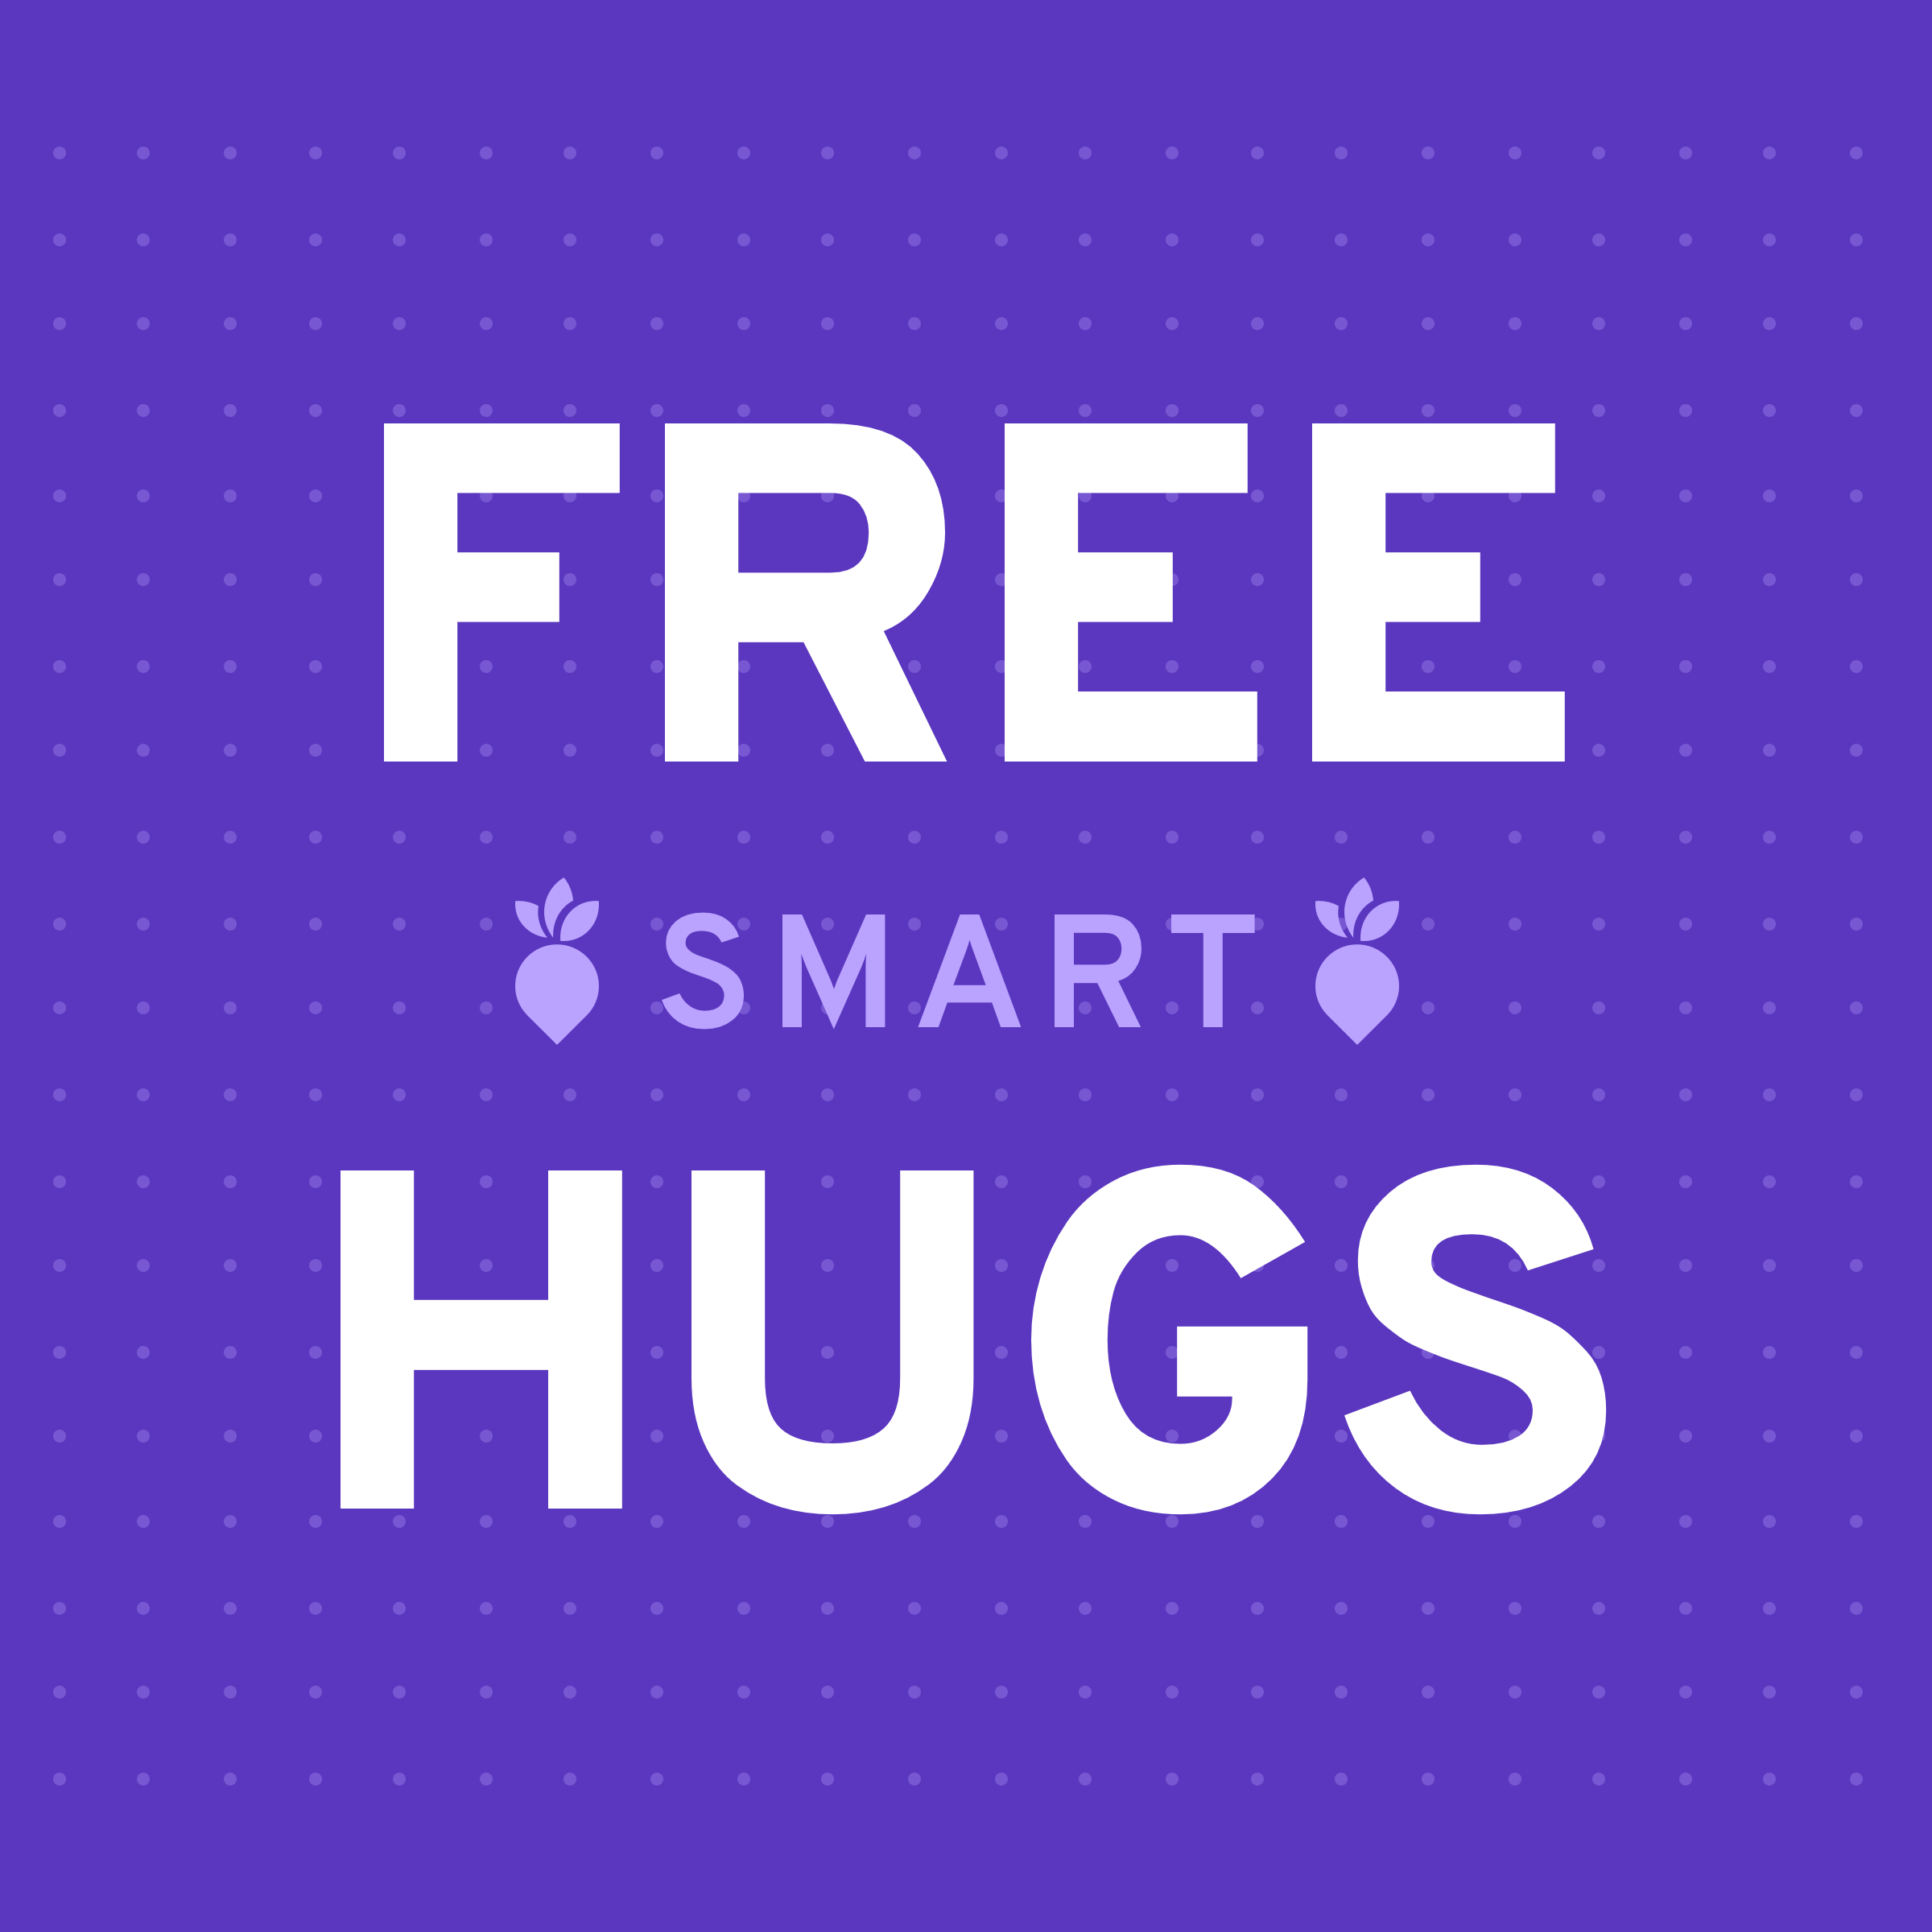 Free smart hugs by Wunder